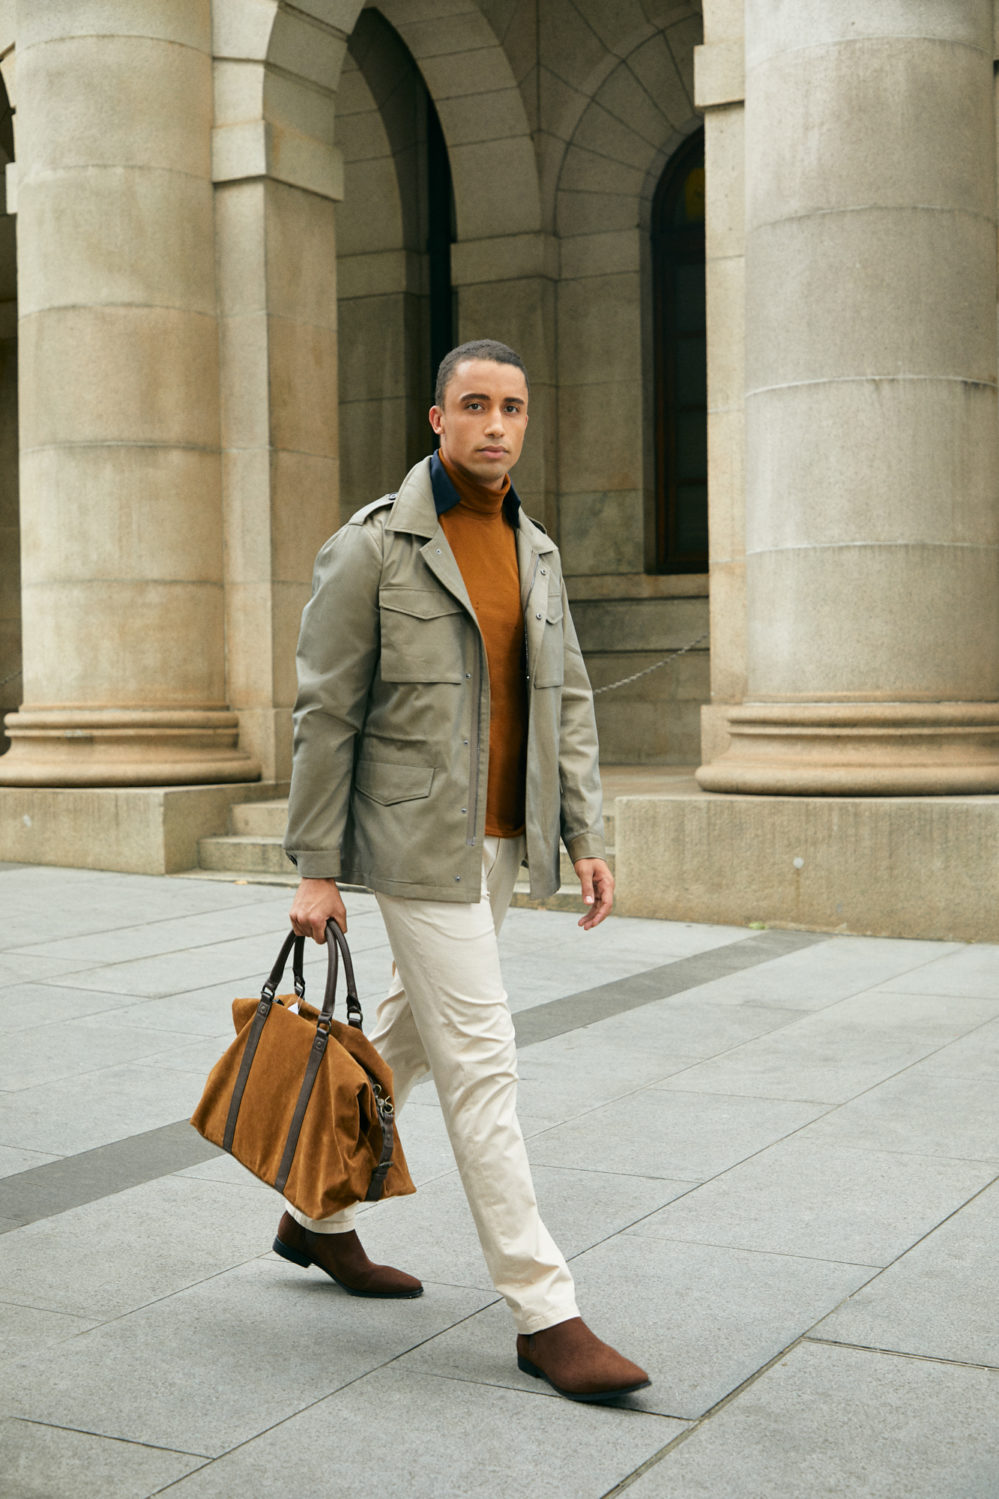 Model in Senszio custom tailored casual wear, including cream chinos and a field jacket